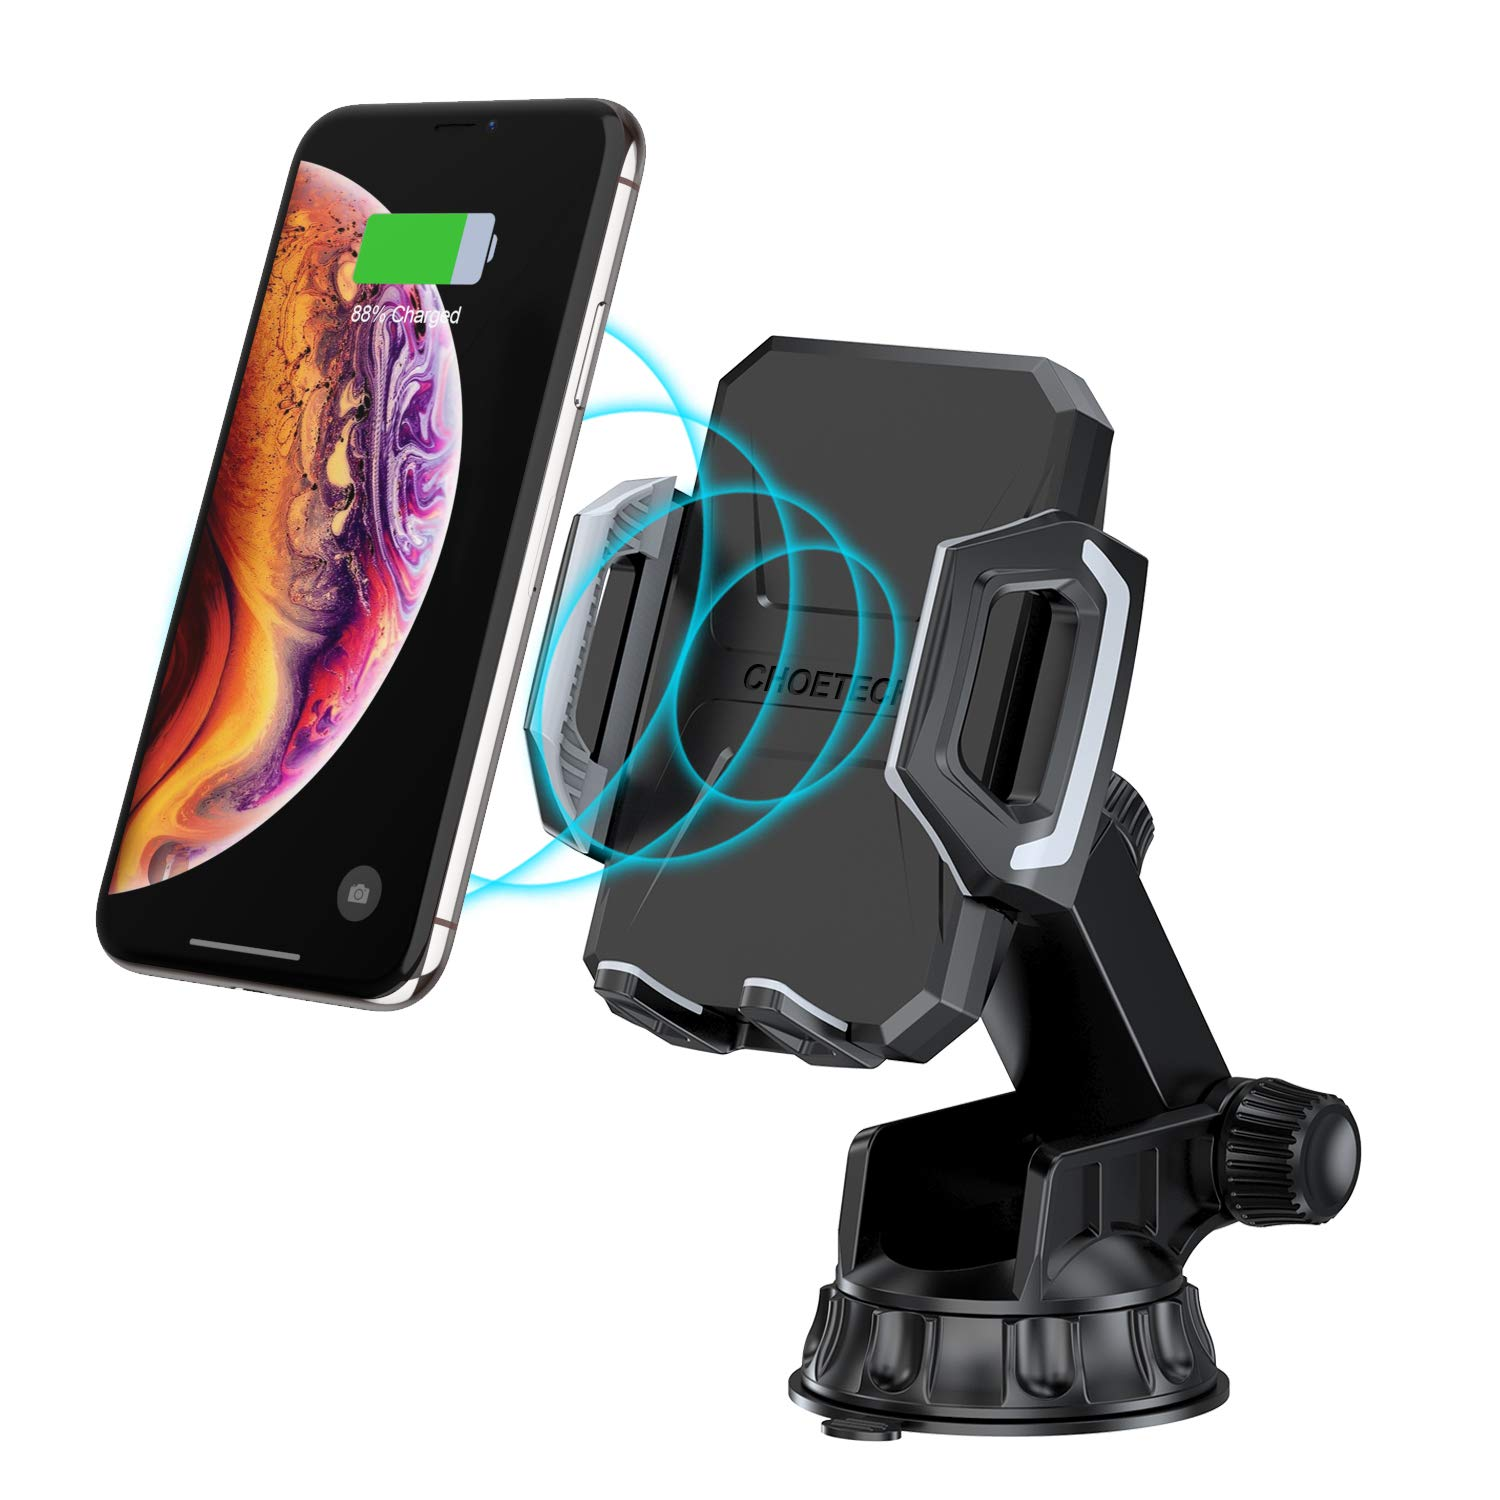 CHOETECH Wireless Car Charger Dashboard /& Windshield CHOE TECHNOLOGY 4351526132 10W for Samsung Galaxy Note 9 S9 S9 Plus S10 Adjustable Fast Wireless Charger Car Mount 7.5W Compatible with iPhone Xs XS Max Xr 8 8 Plus X